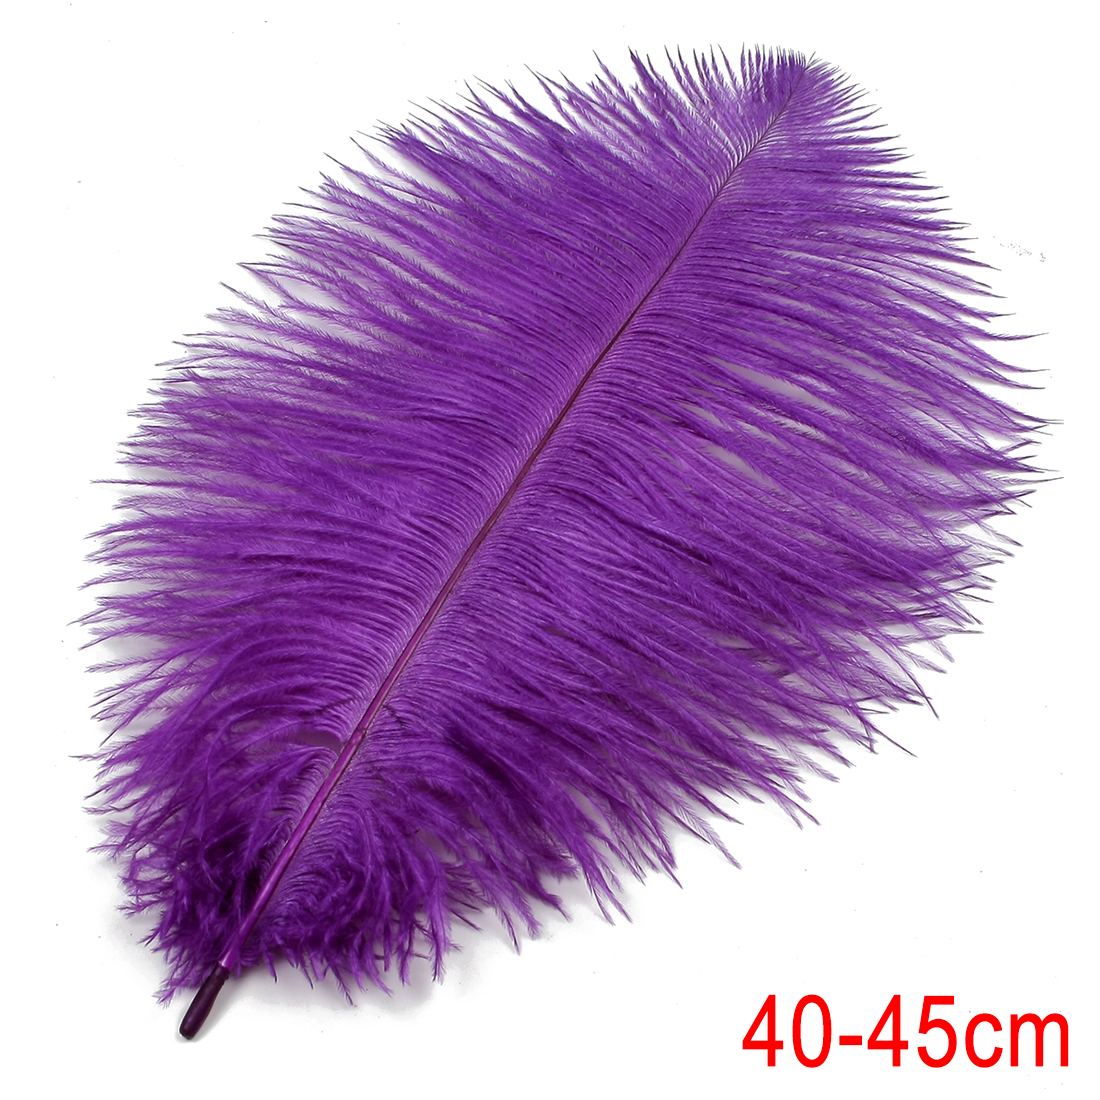 16-18inch / 40-45cm Ostrich Feather for Wedding Party Decoration Purple